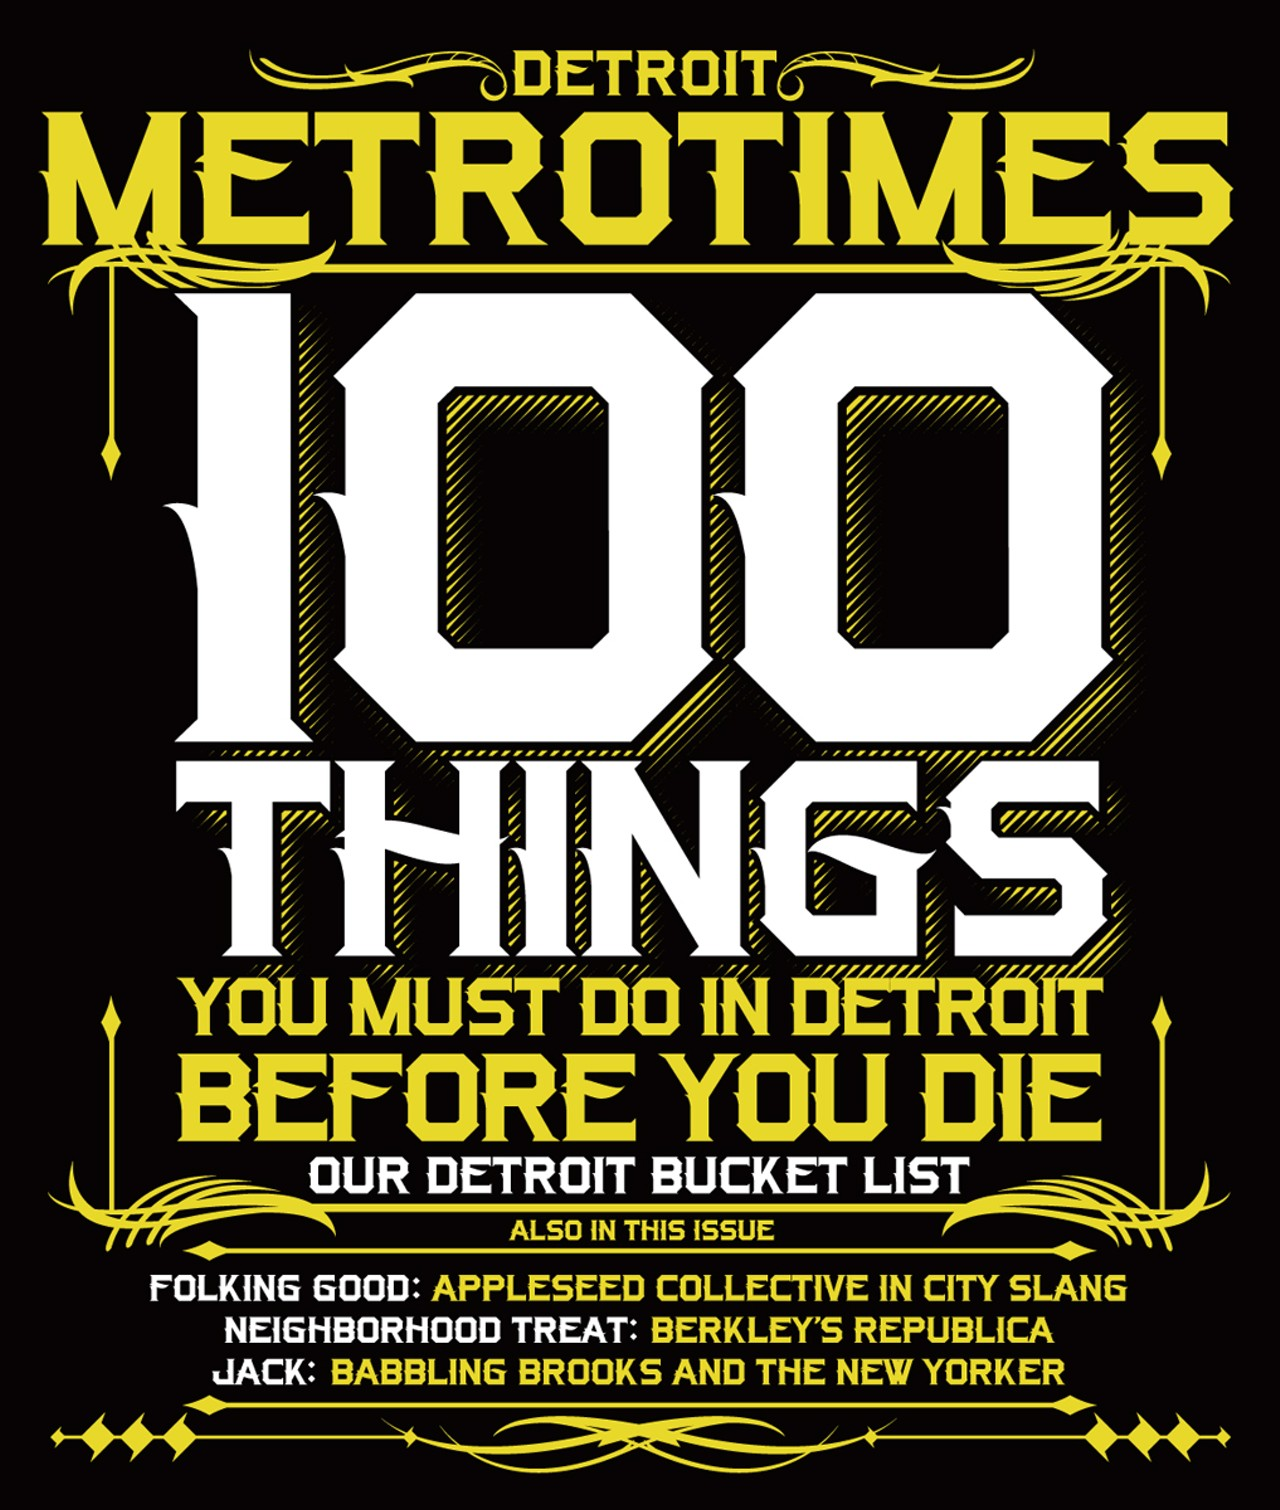 100 Things All Detroiters Should Do Before They Die